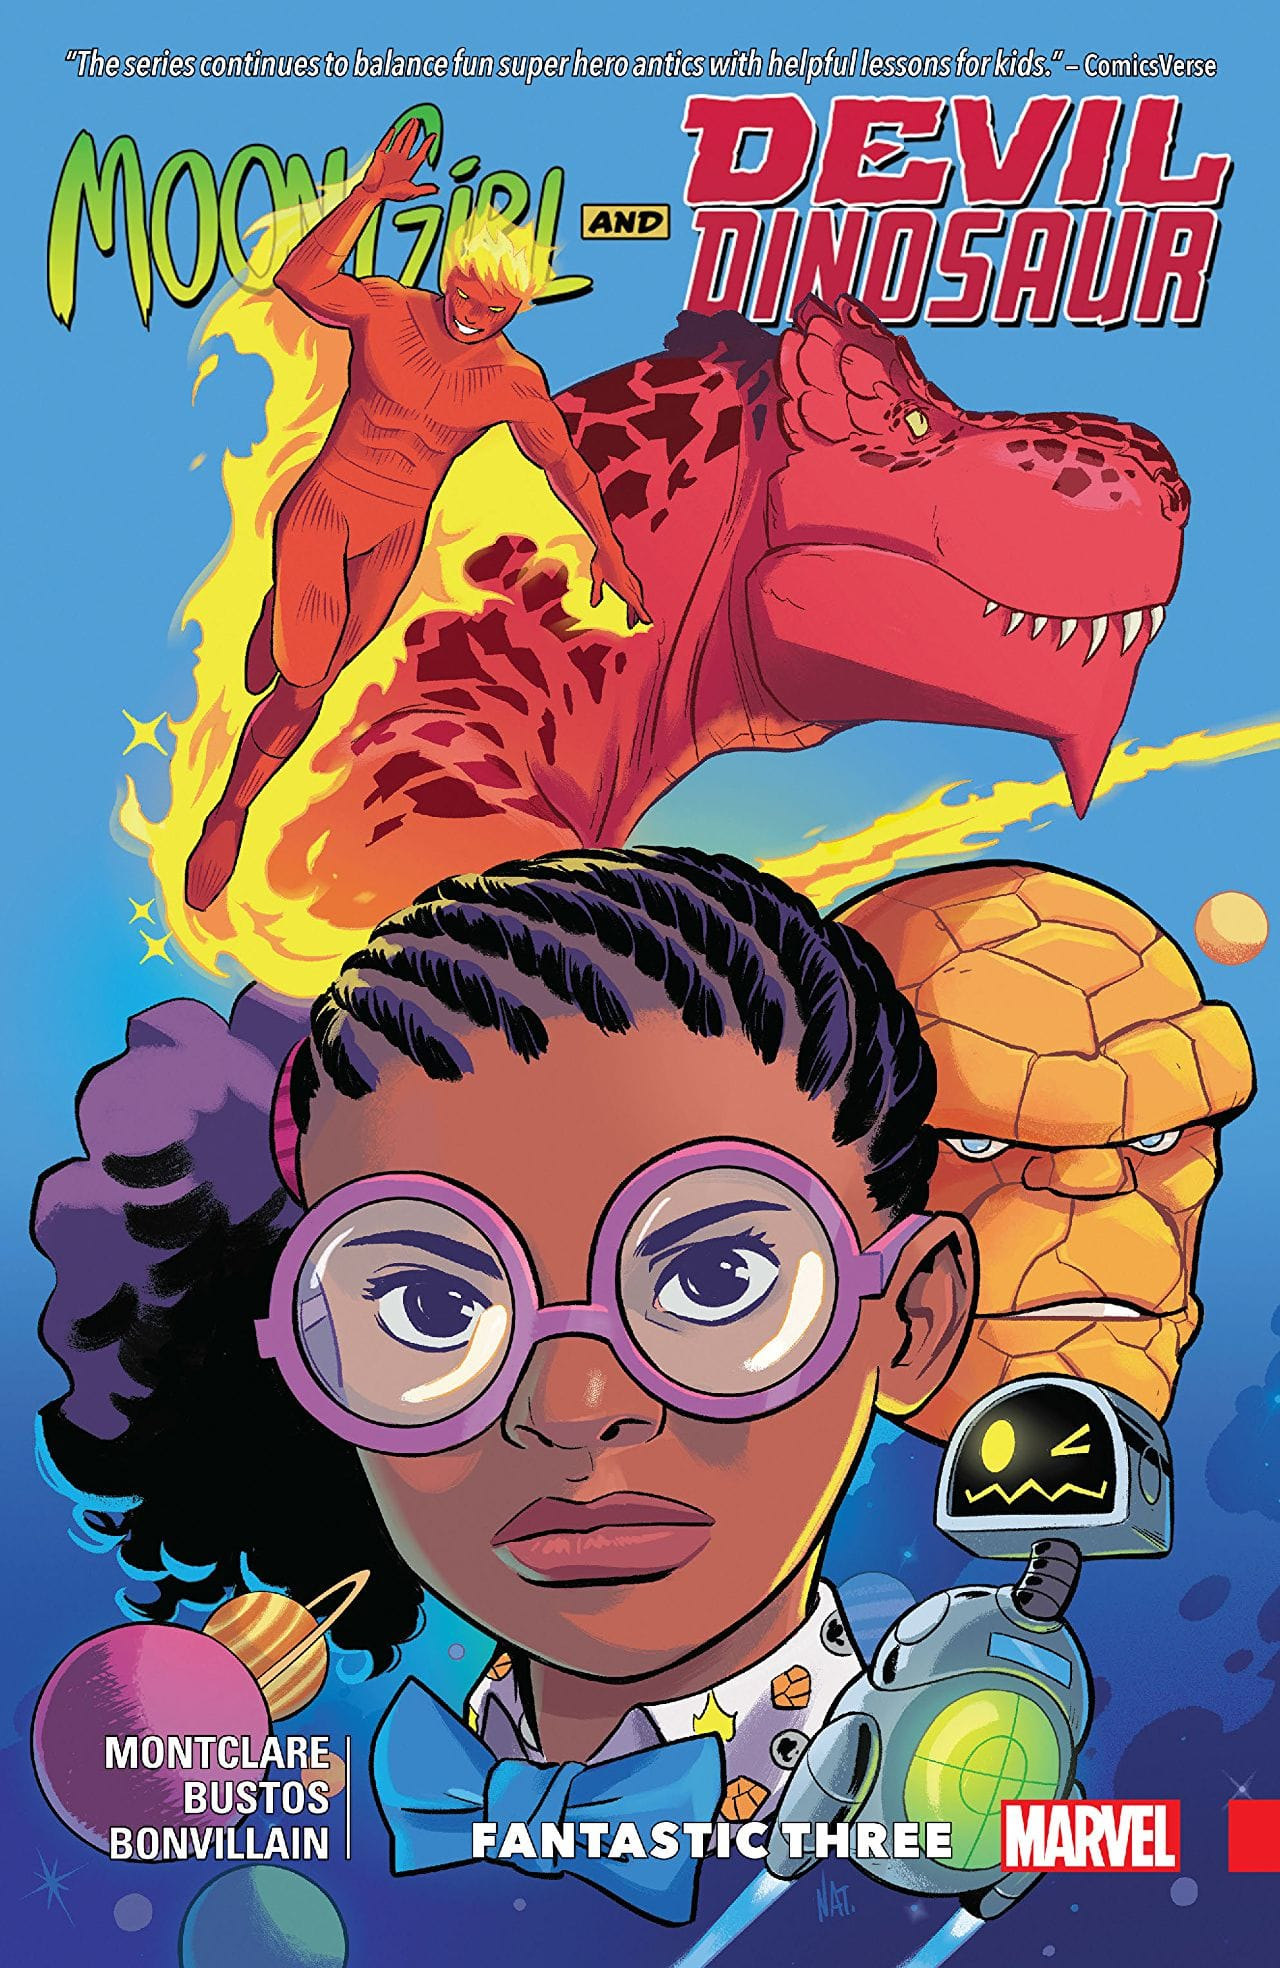 'Moon Girl and Devil Dinosaur Vol. 5: Fantastic Three' review: Humorous fun for all ages